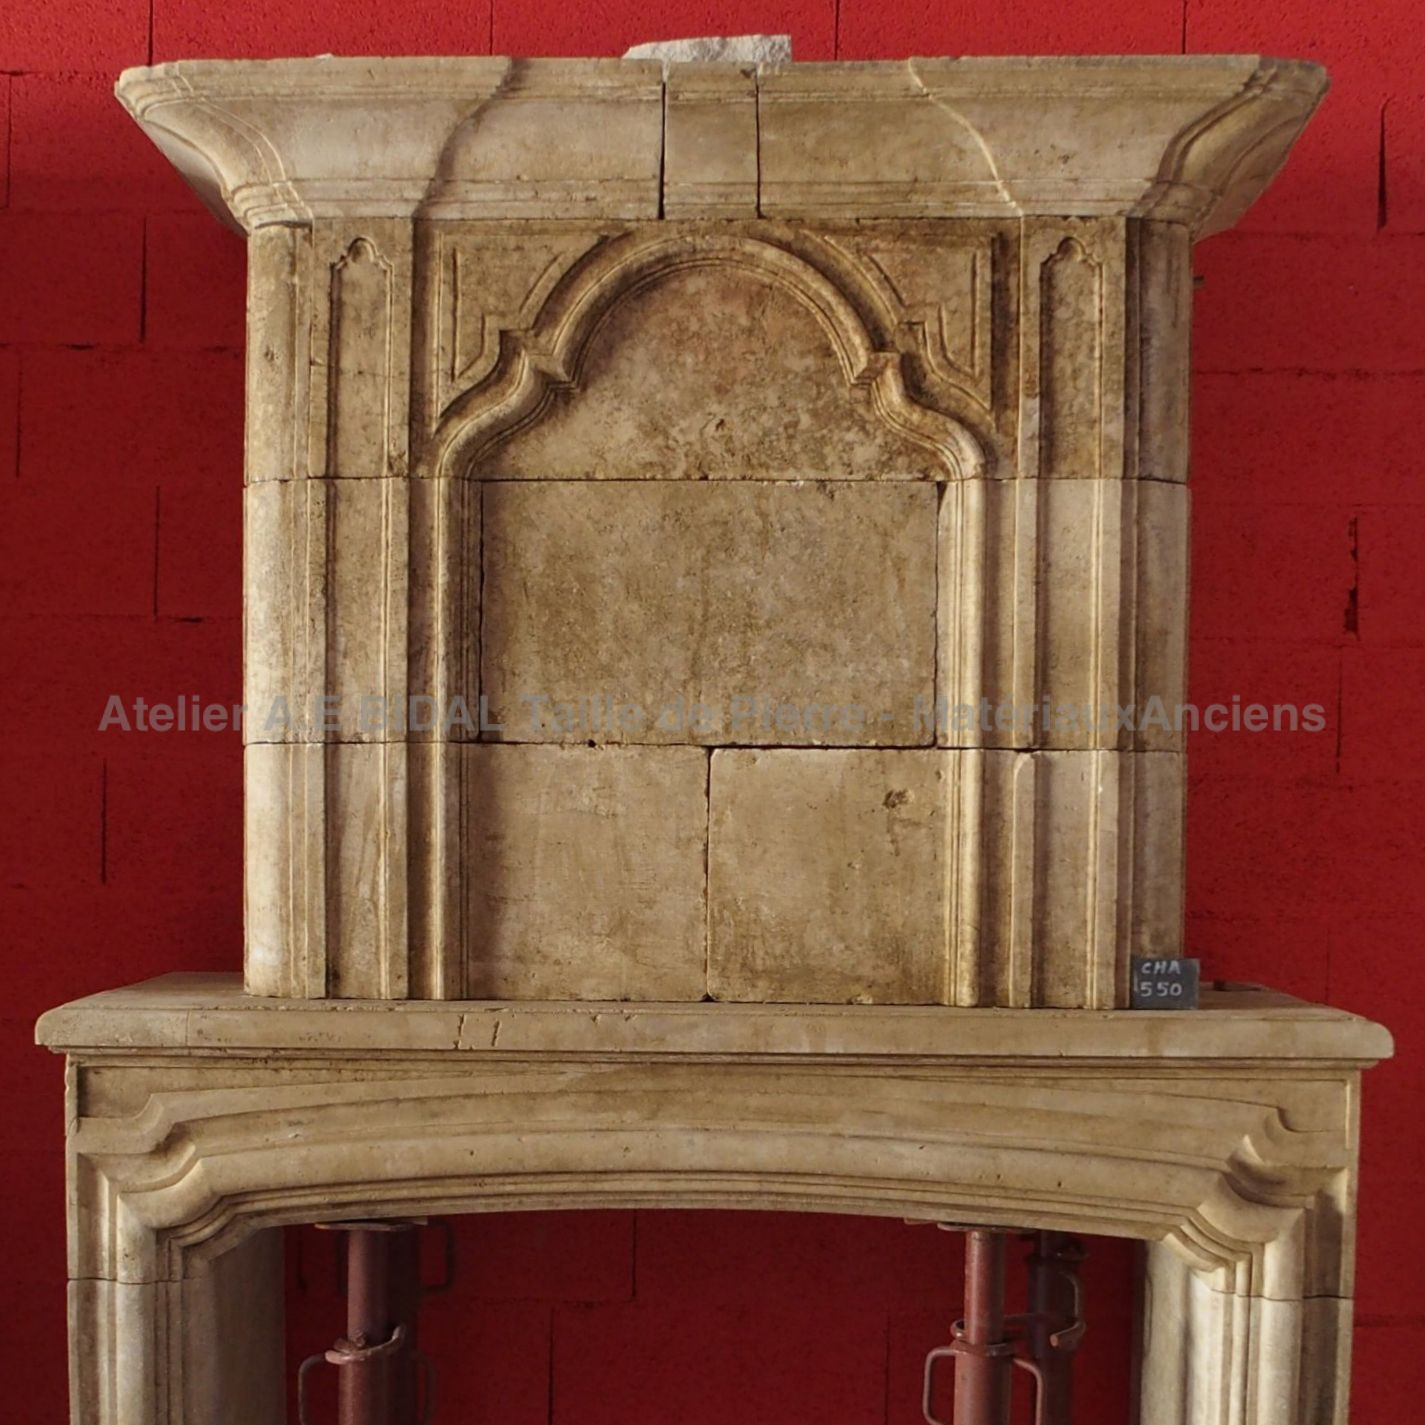 Antique stone fireplace  - a traditional, robust and elegant fireplace.